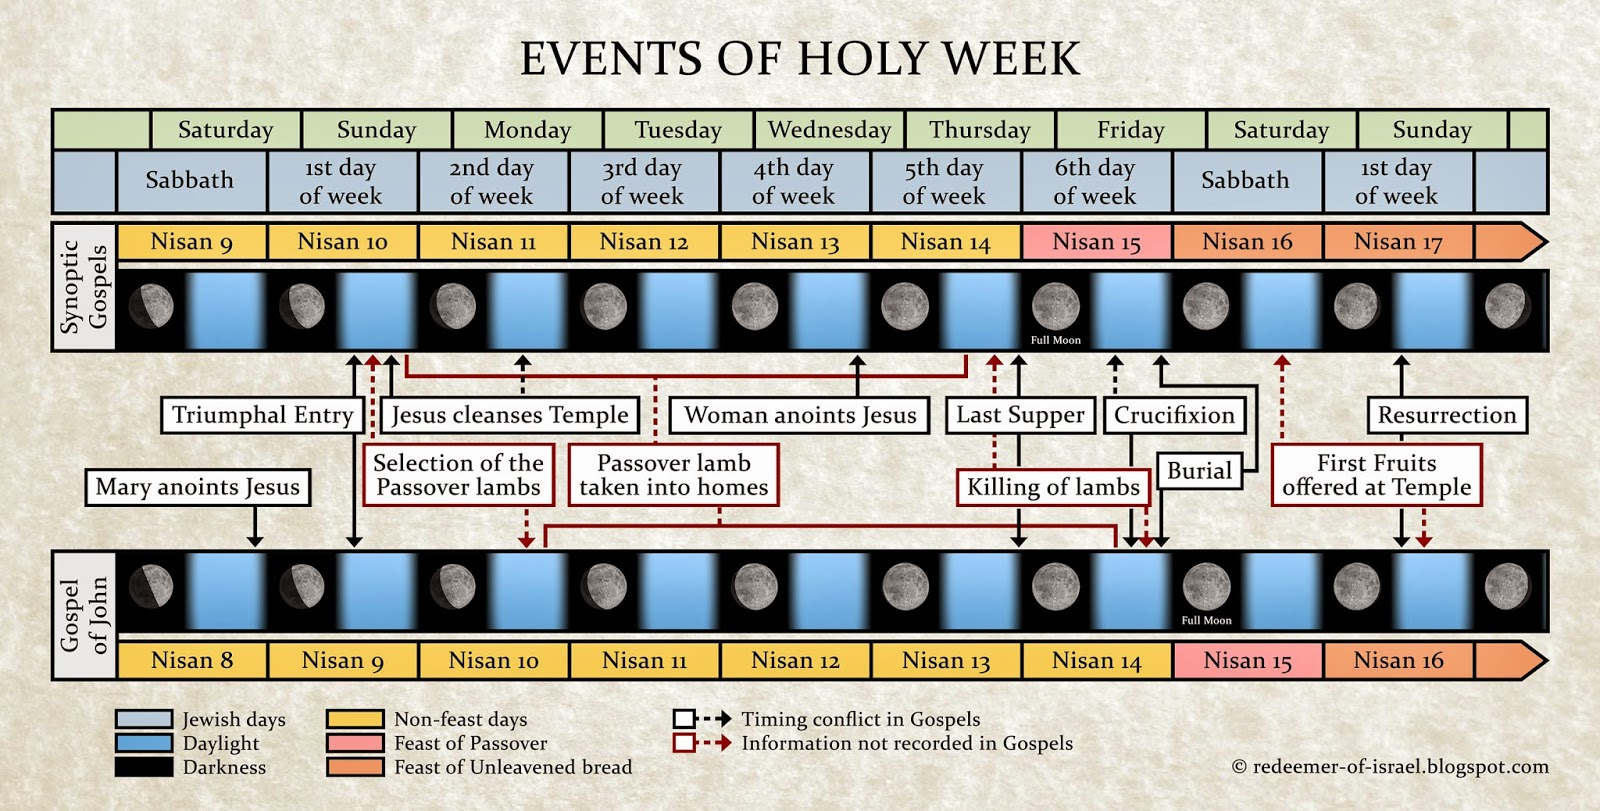 Redeemer of Israel: Events of Holy Week: Palm Sunday